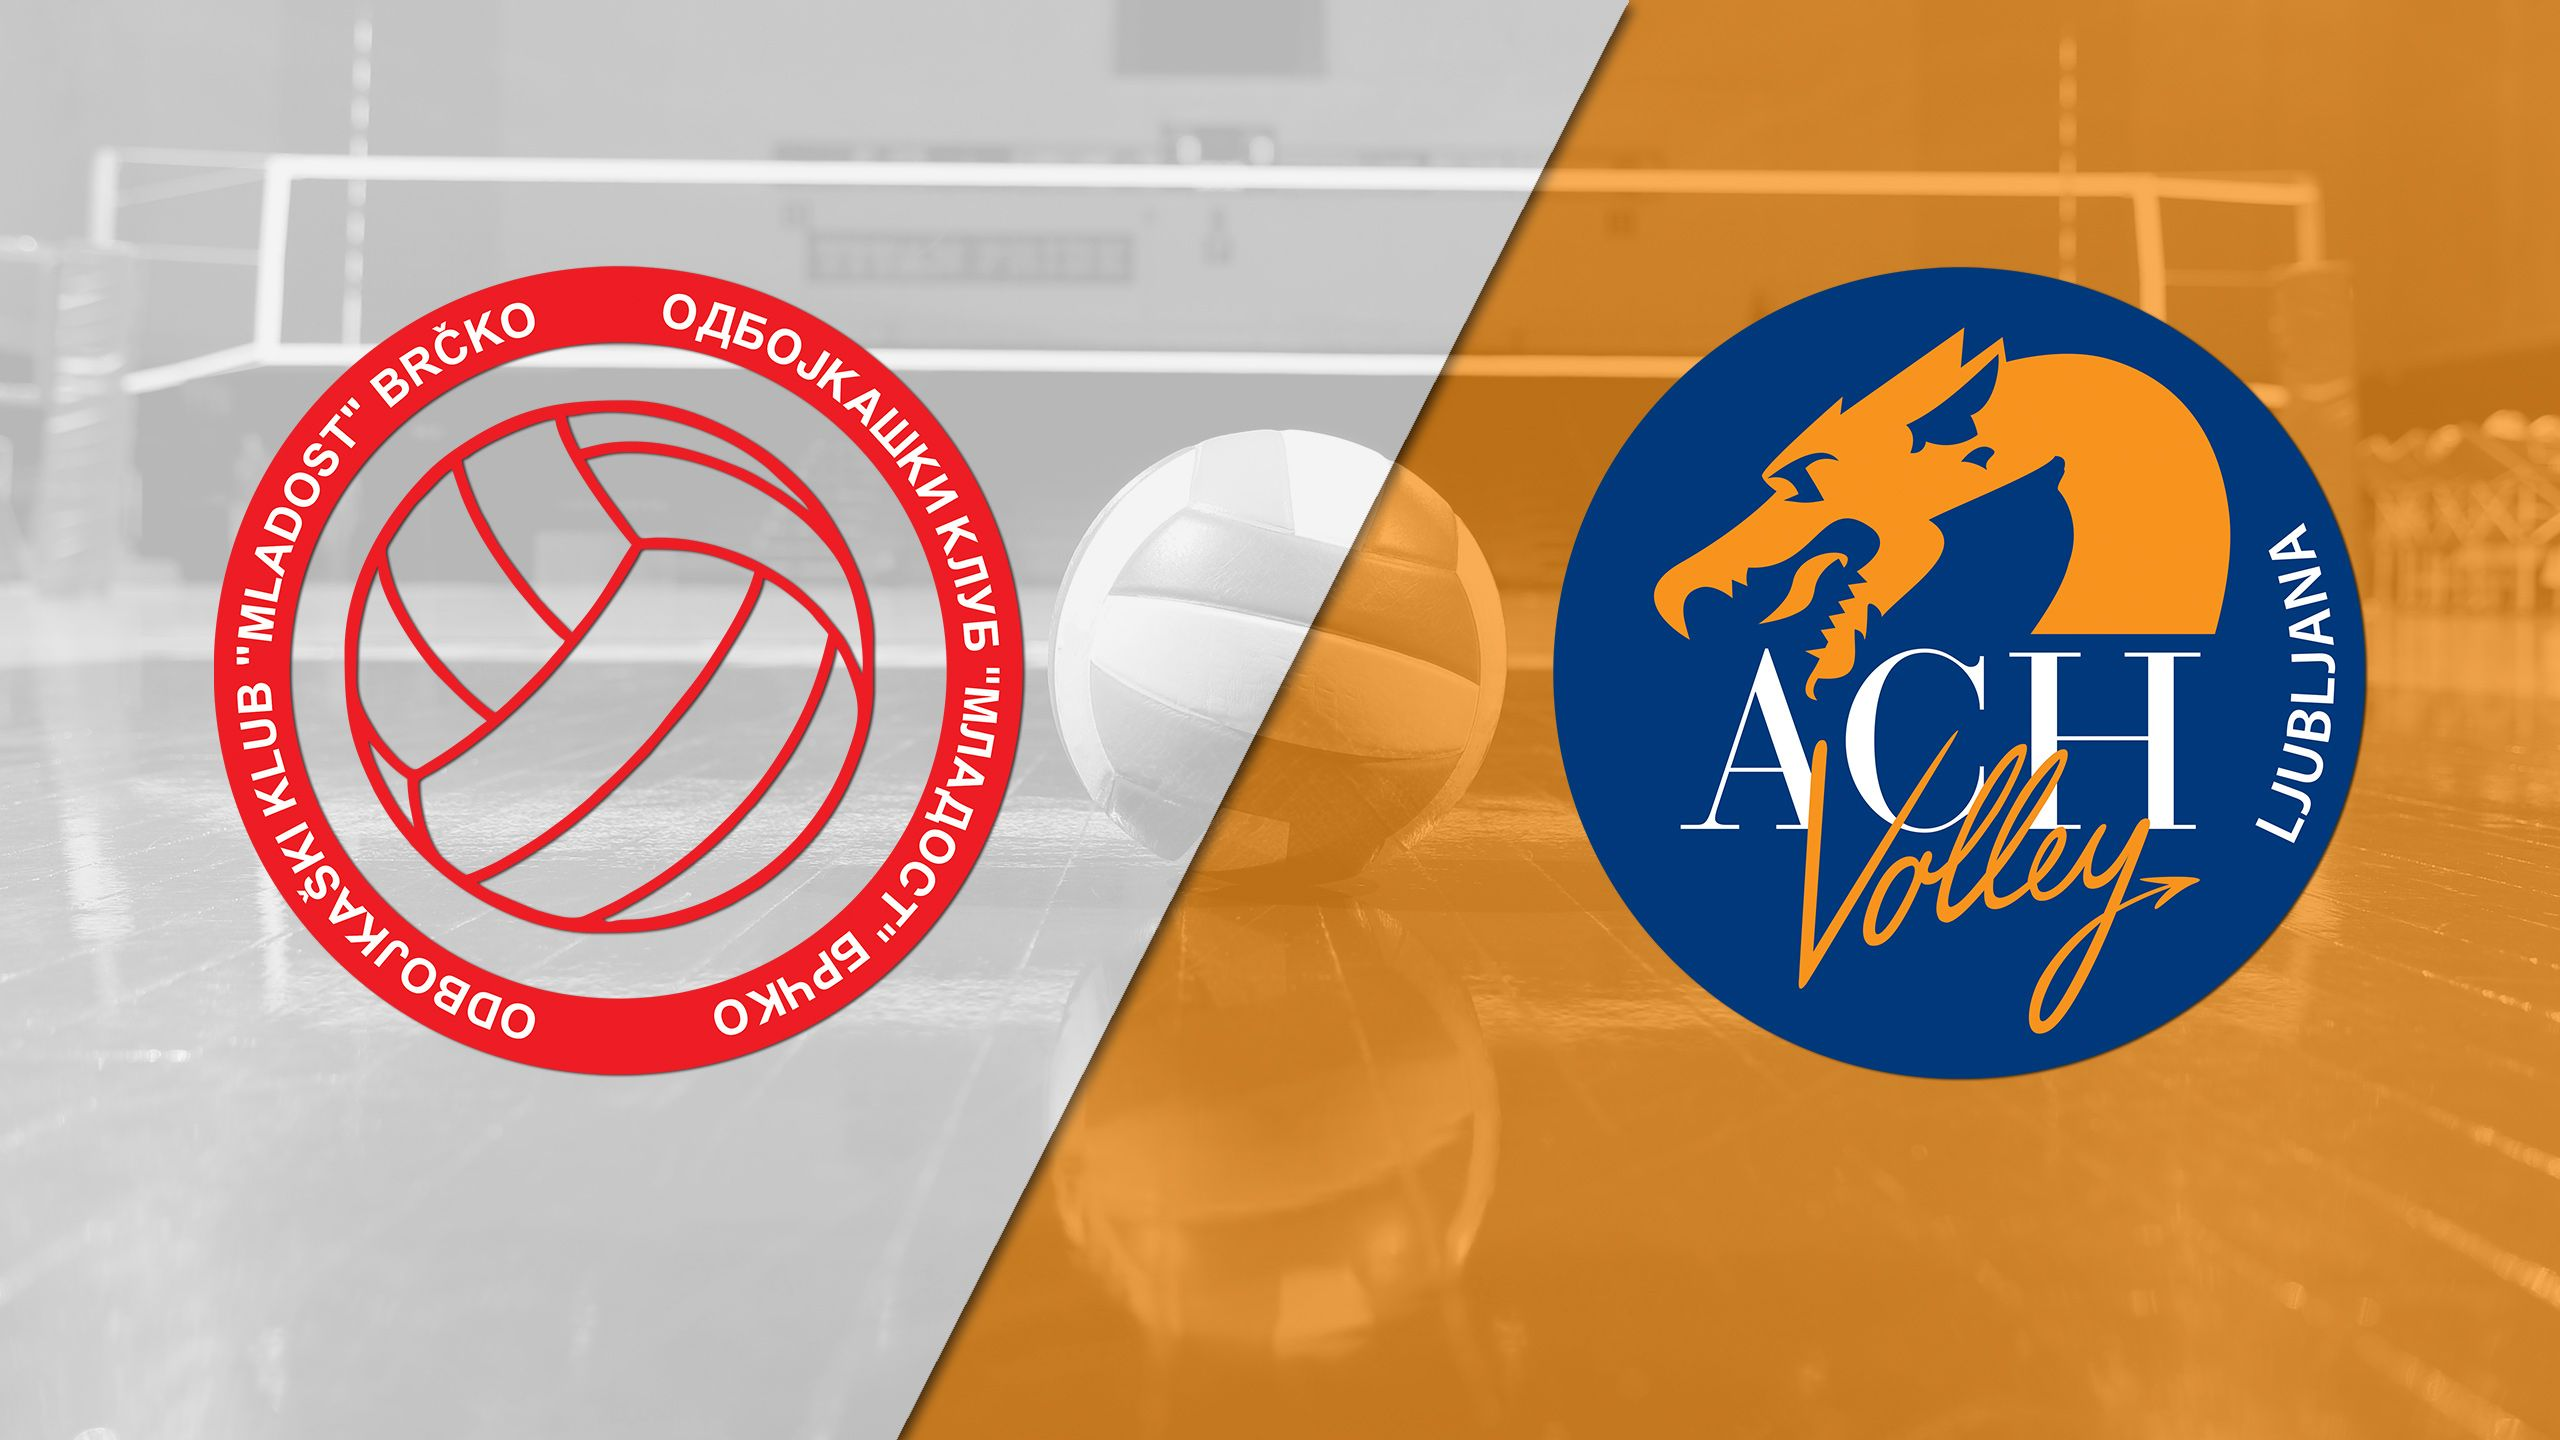 Ok Mladost Brcko vs. ACH Volley Ljubljana (CEV Men's Champions League)